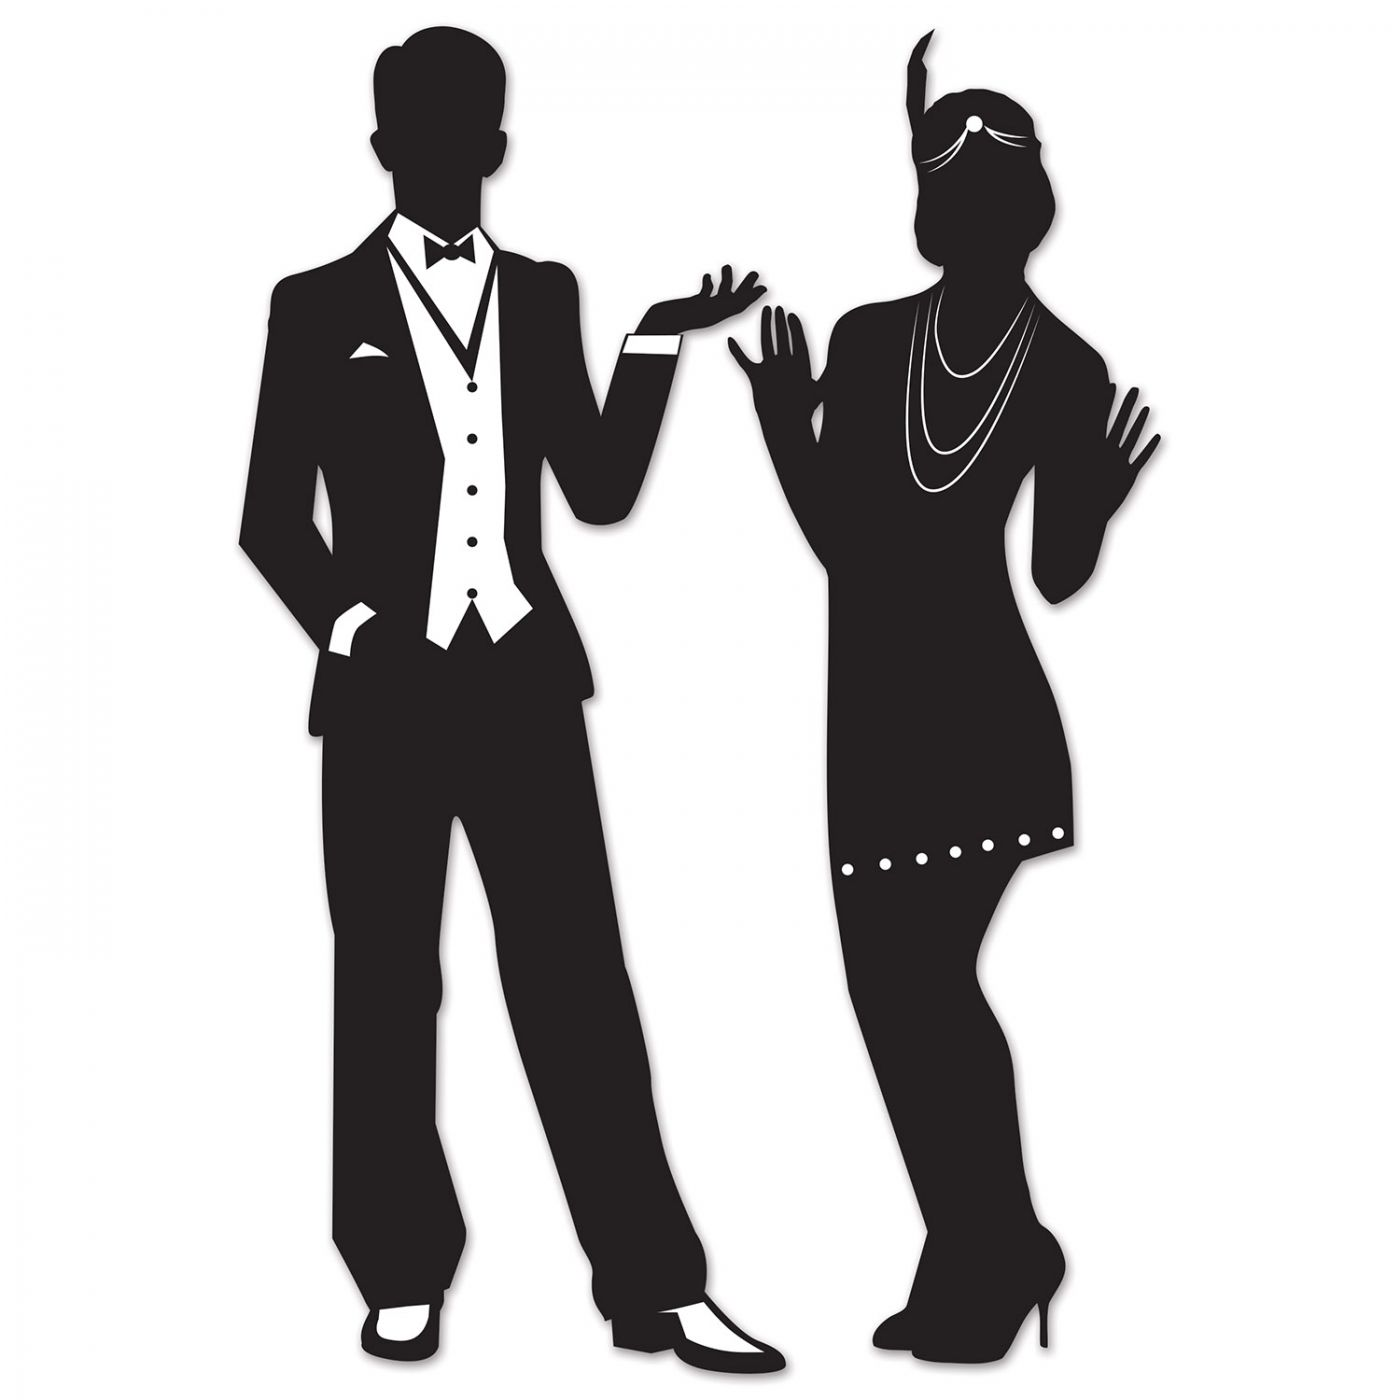 Great 20's Silhouettes image